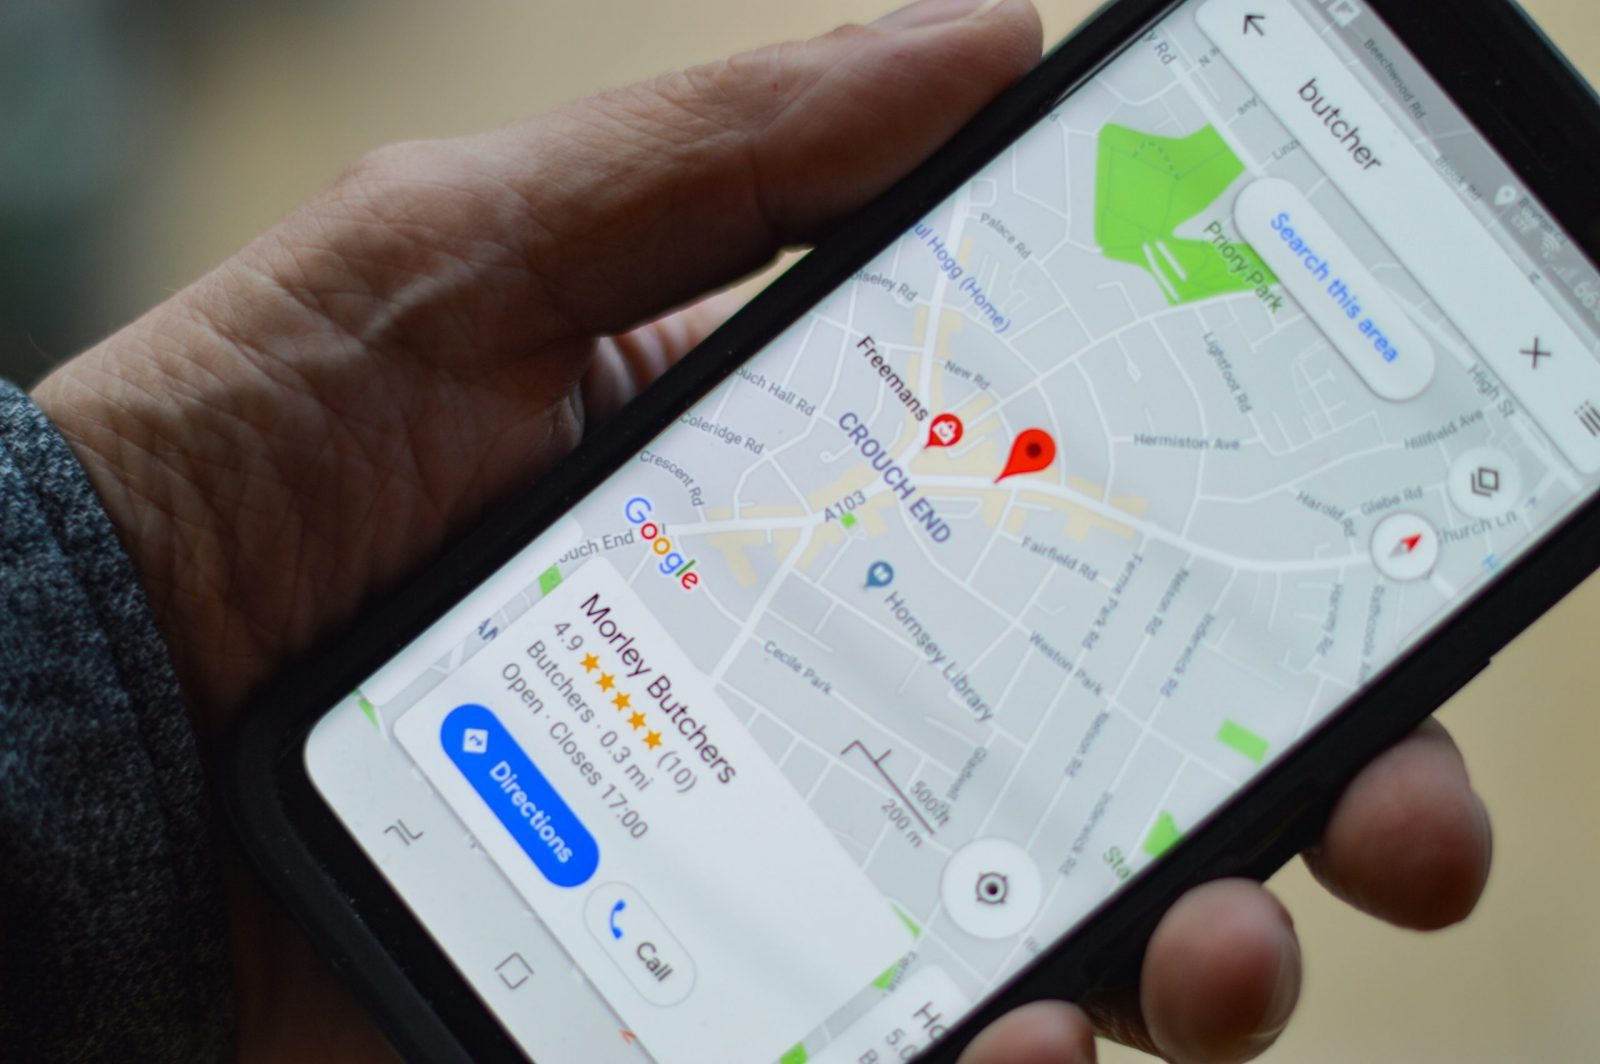 Photo of a phone showing a Google My Business listing on Google Maps.